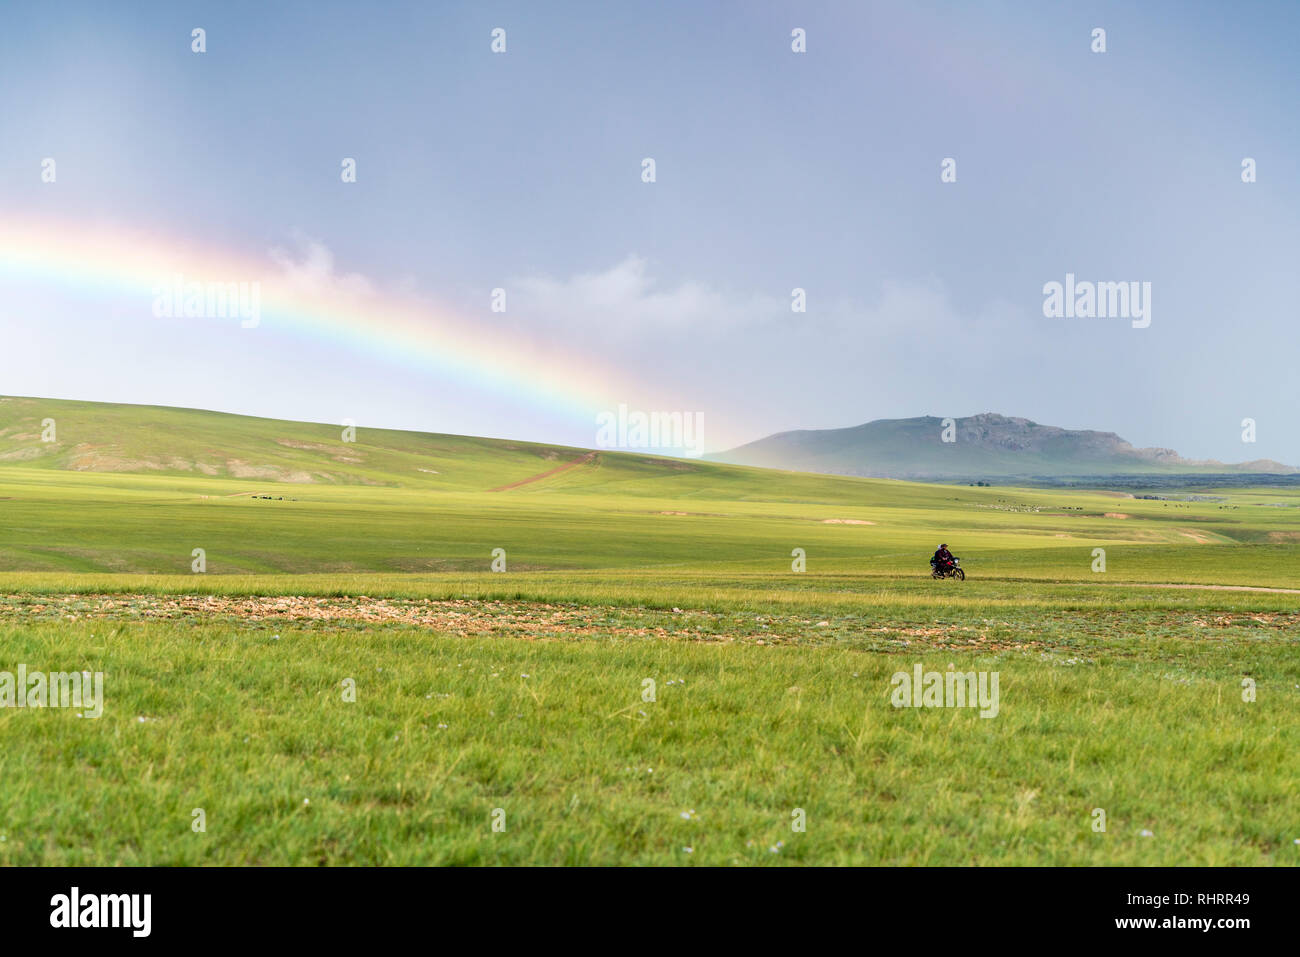 Man riding his motorbike and rainbow over the green Mongolian steppe. Ovorkhangai province, Mongolia. - Stock Image